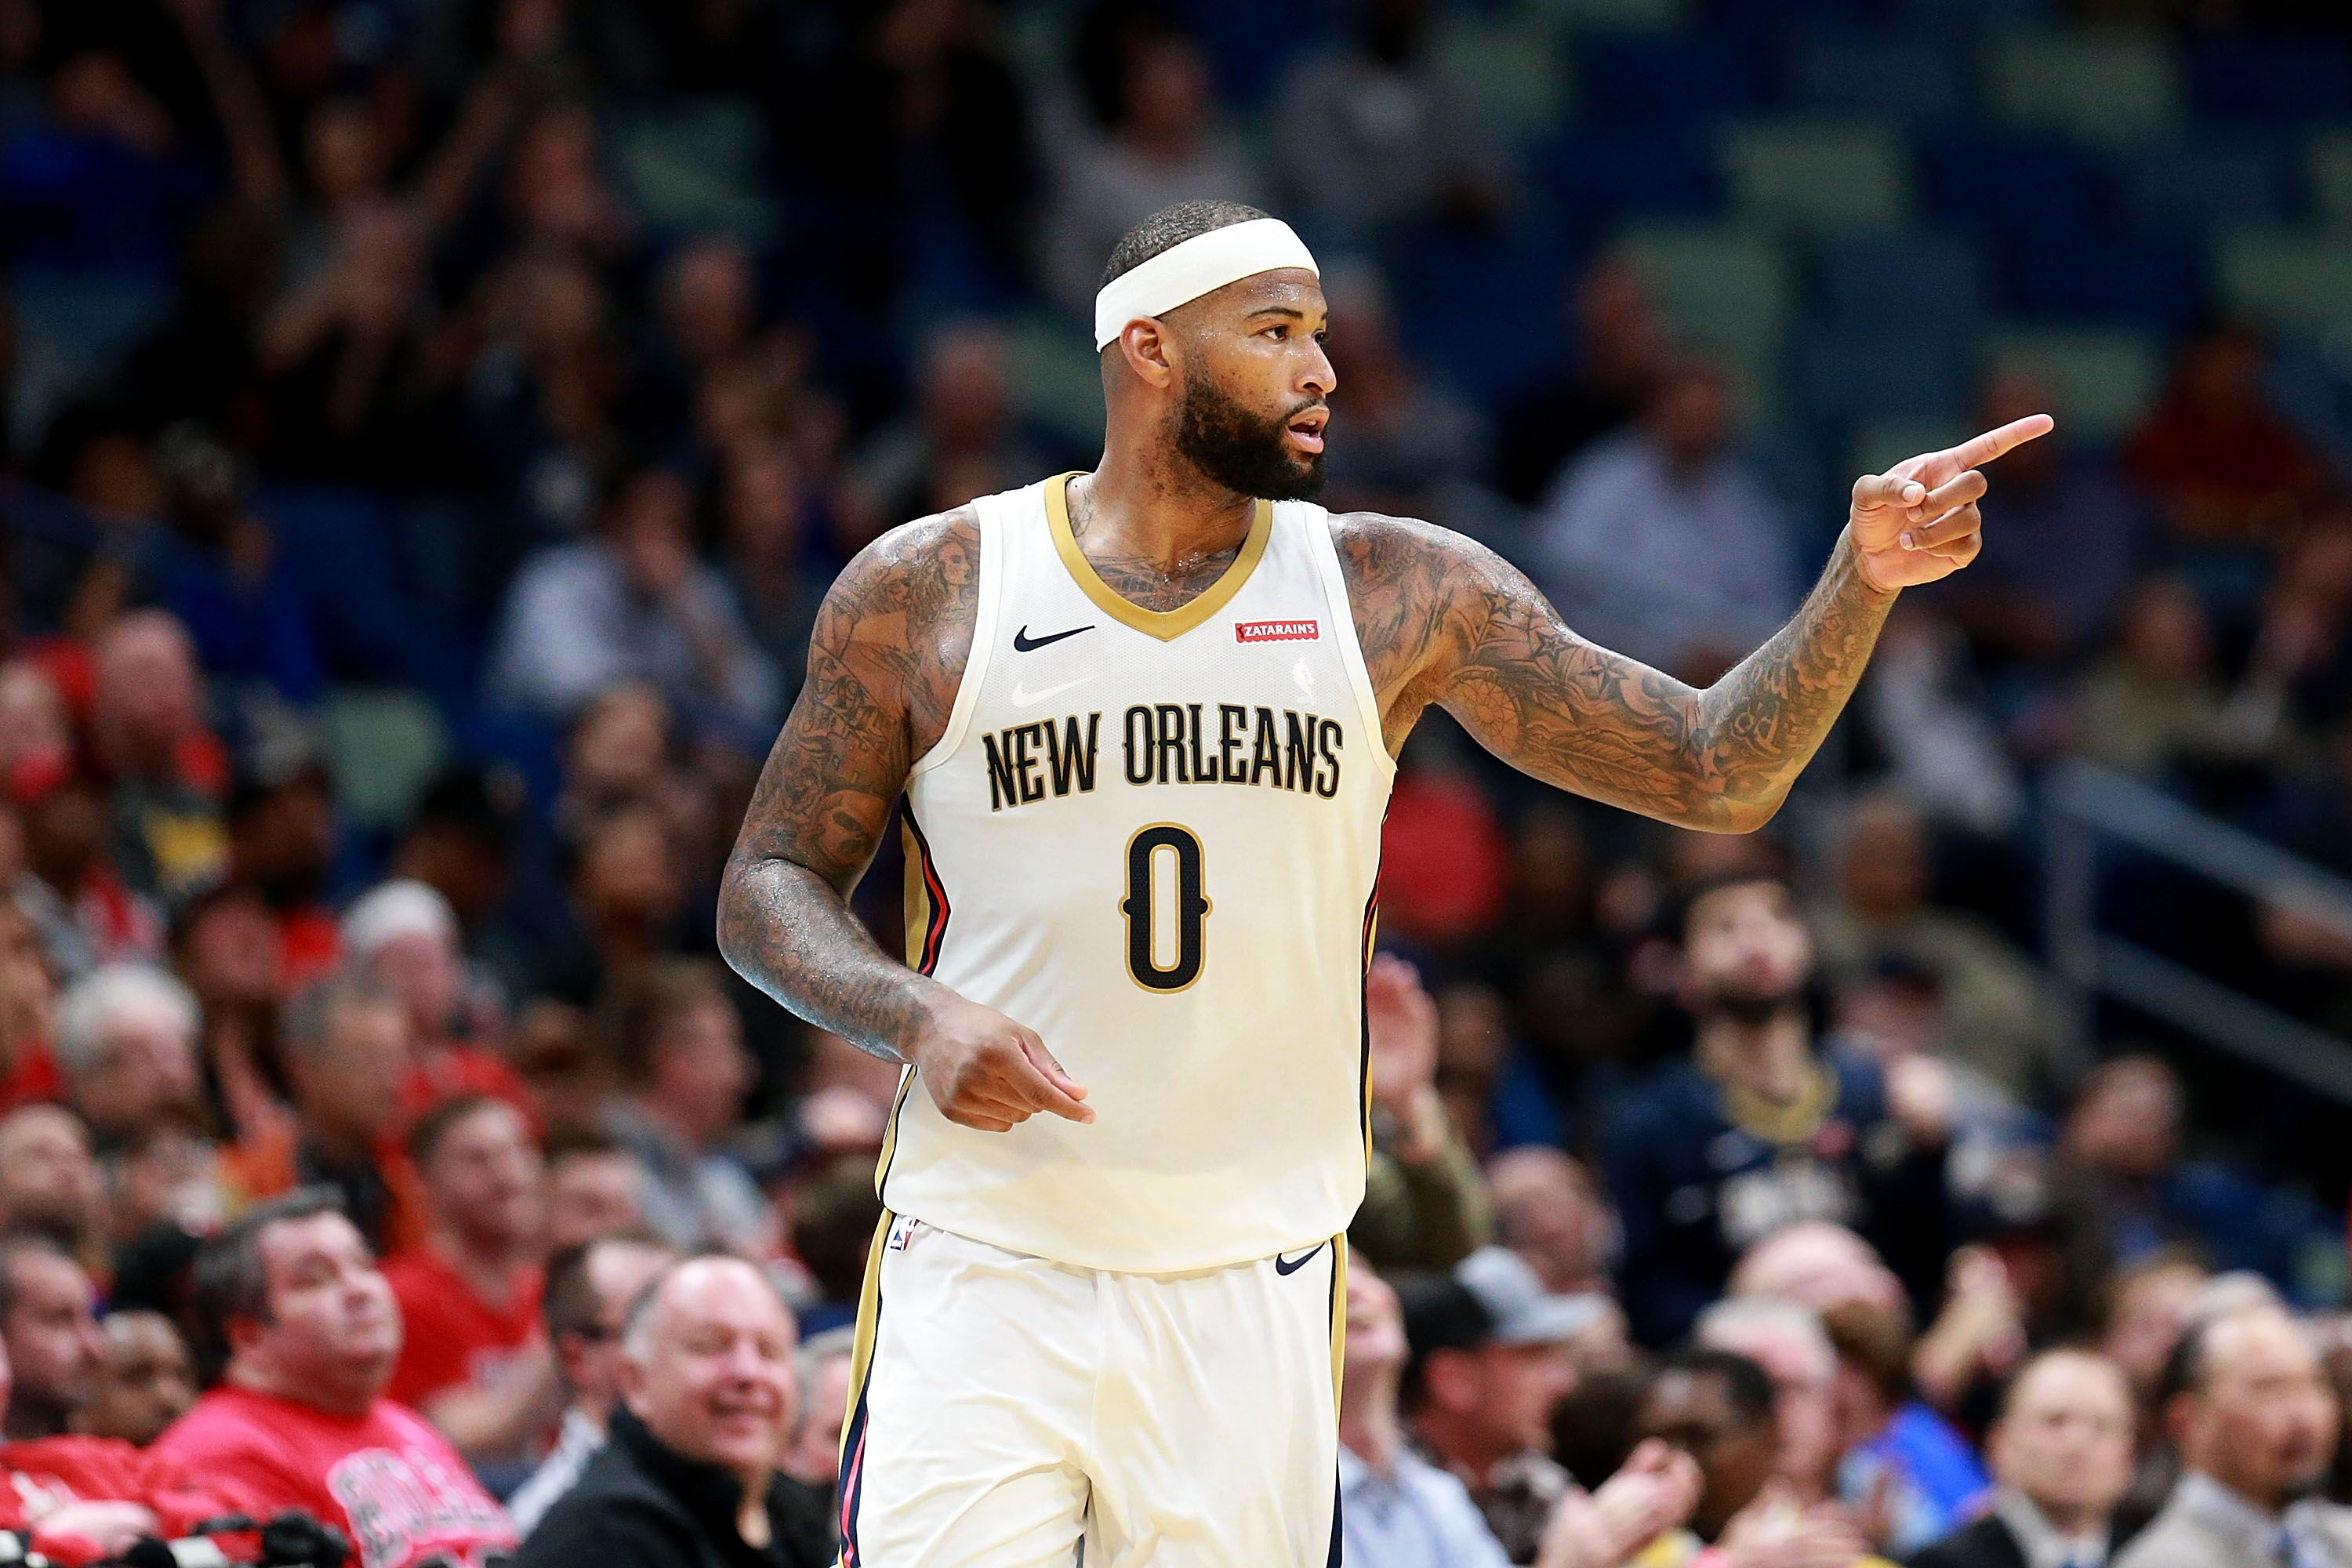 b99070be Los Angeles Clippers: Could DeMarcus Cousins replace Blake Griffin?